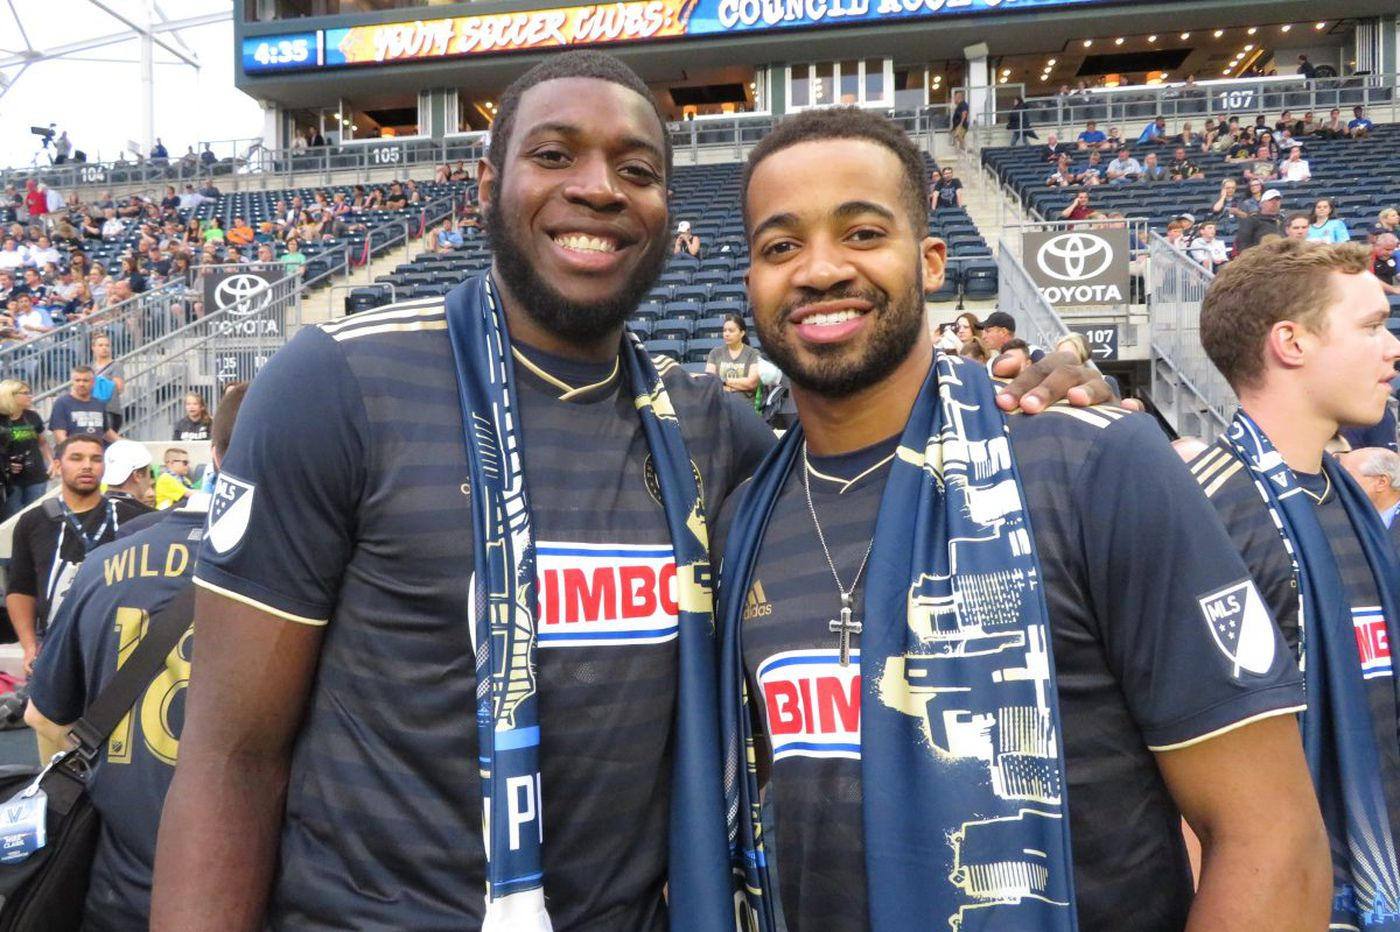 Villanova men's basketball team's victory tour continues at Union game